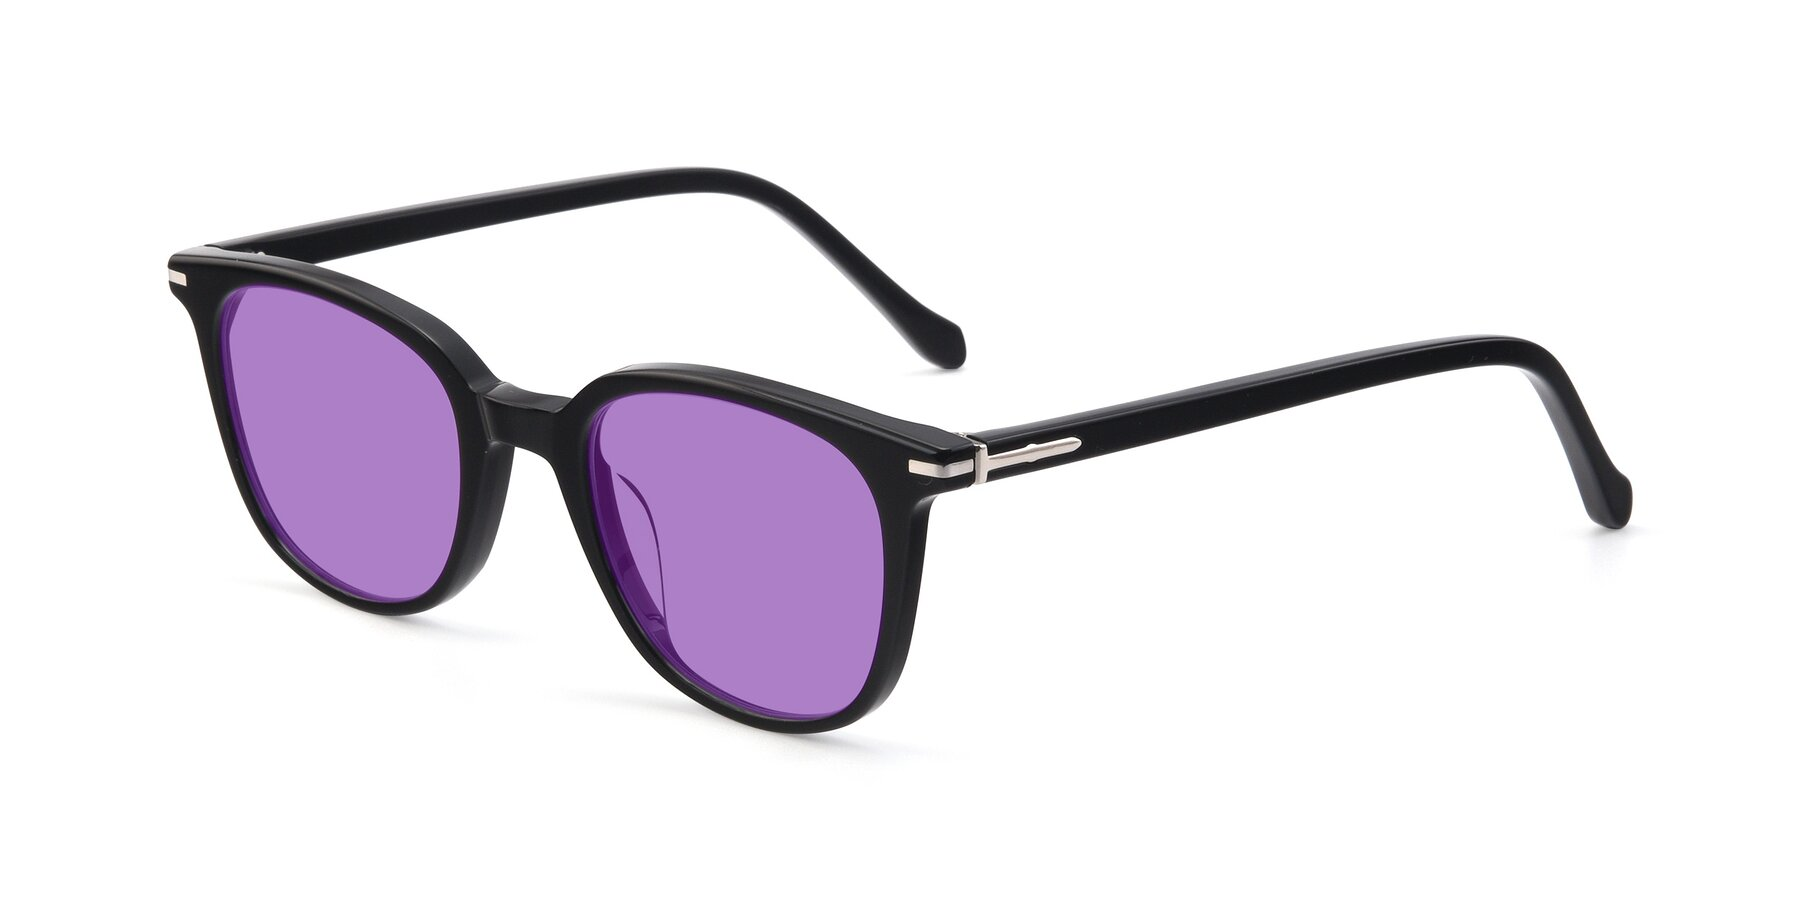 Angle of 17562 in Black with Medium Purple Tinted Lenses